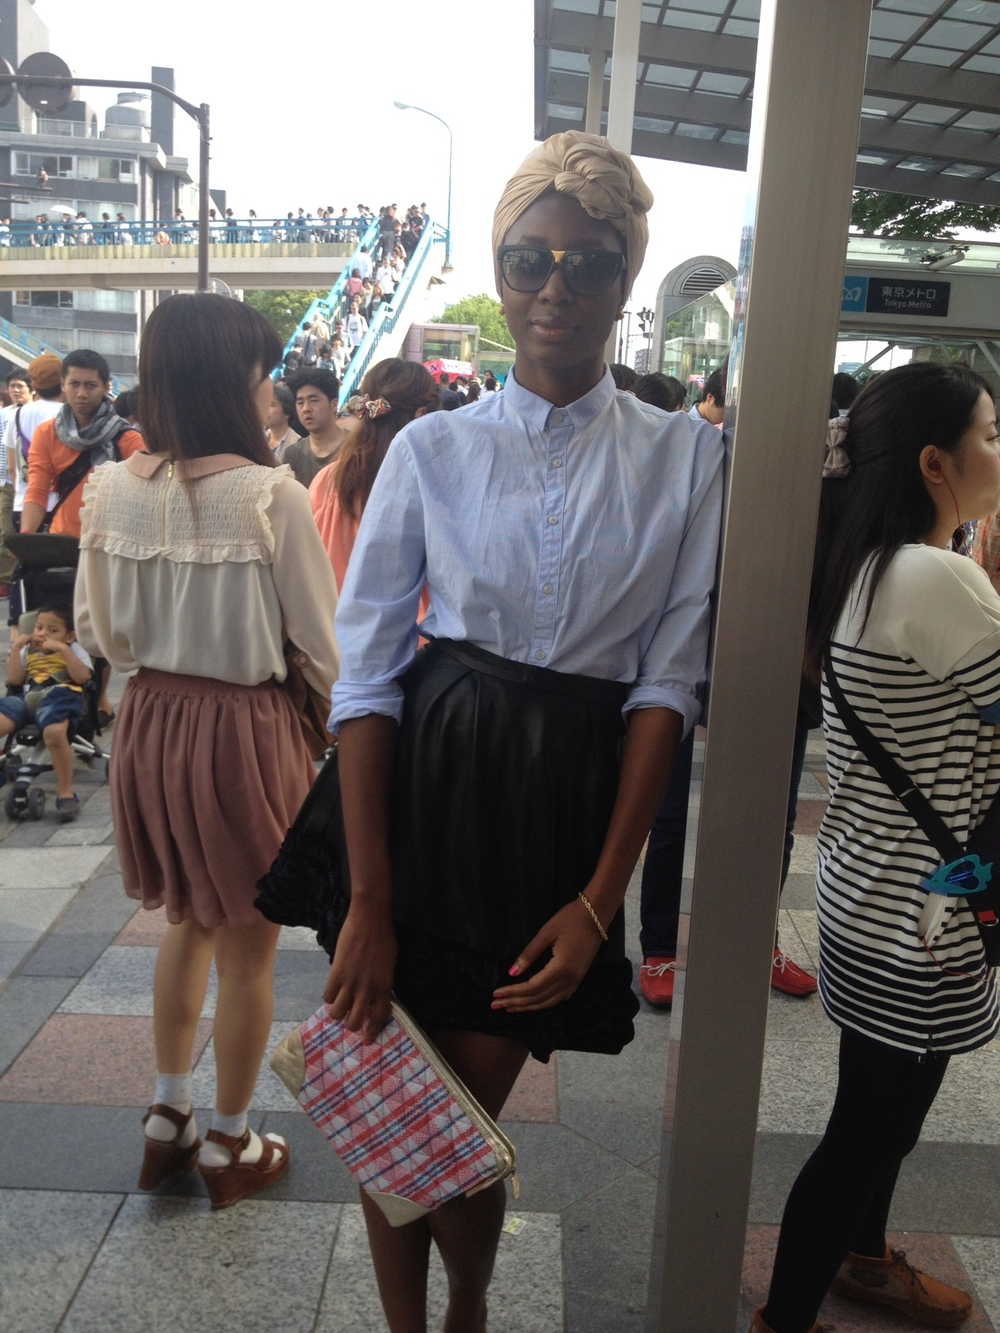 At Harajuku station with my new Zashadu bag. More details on this exciting material soon!